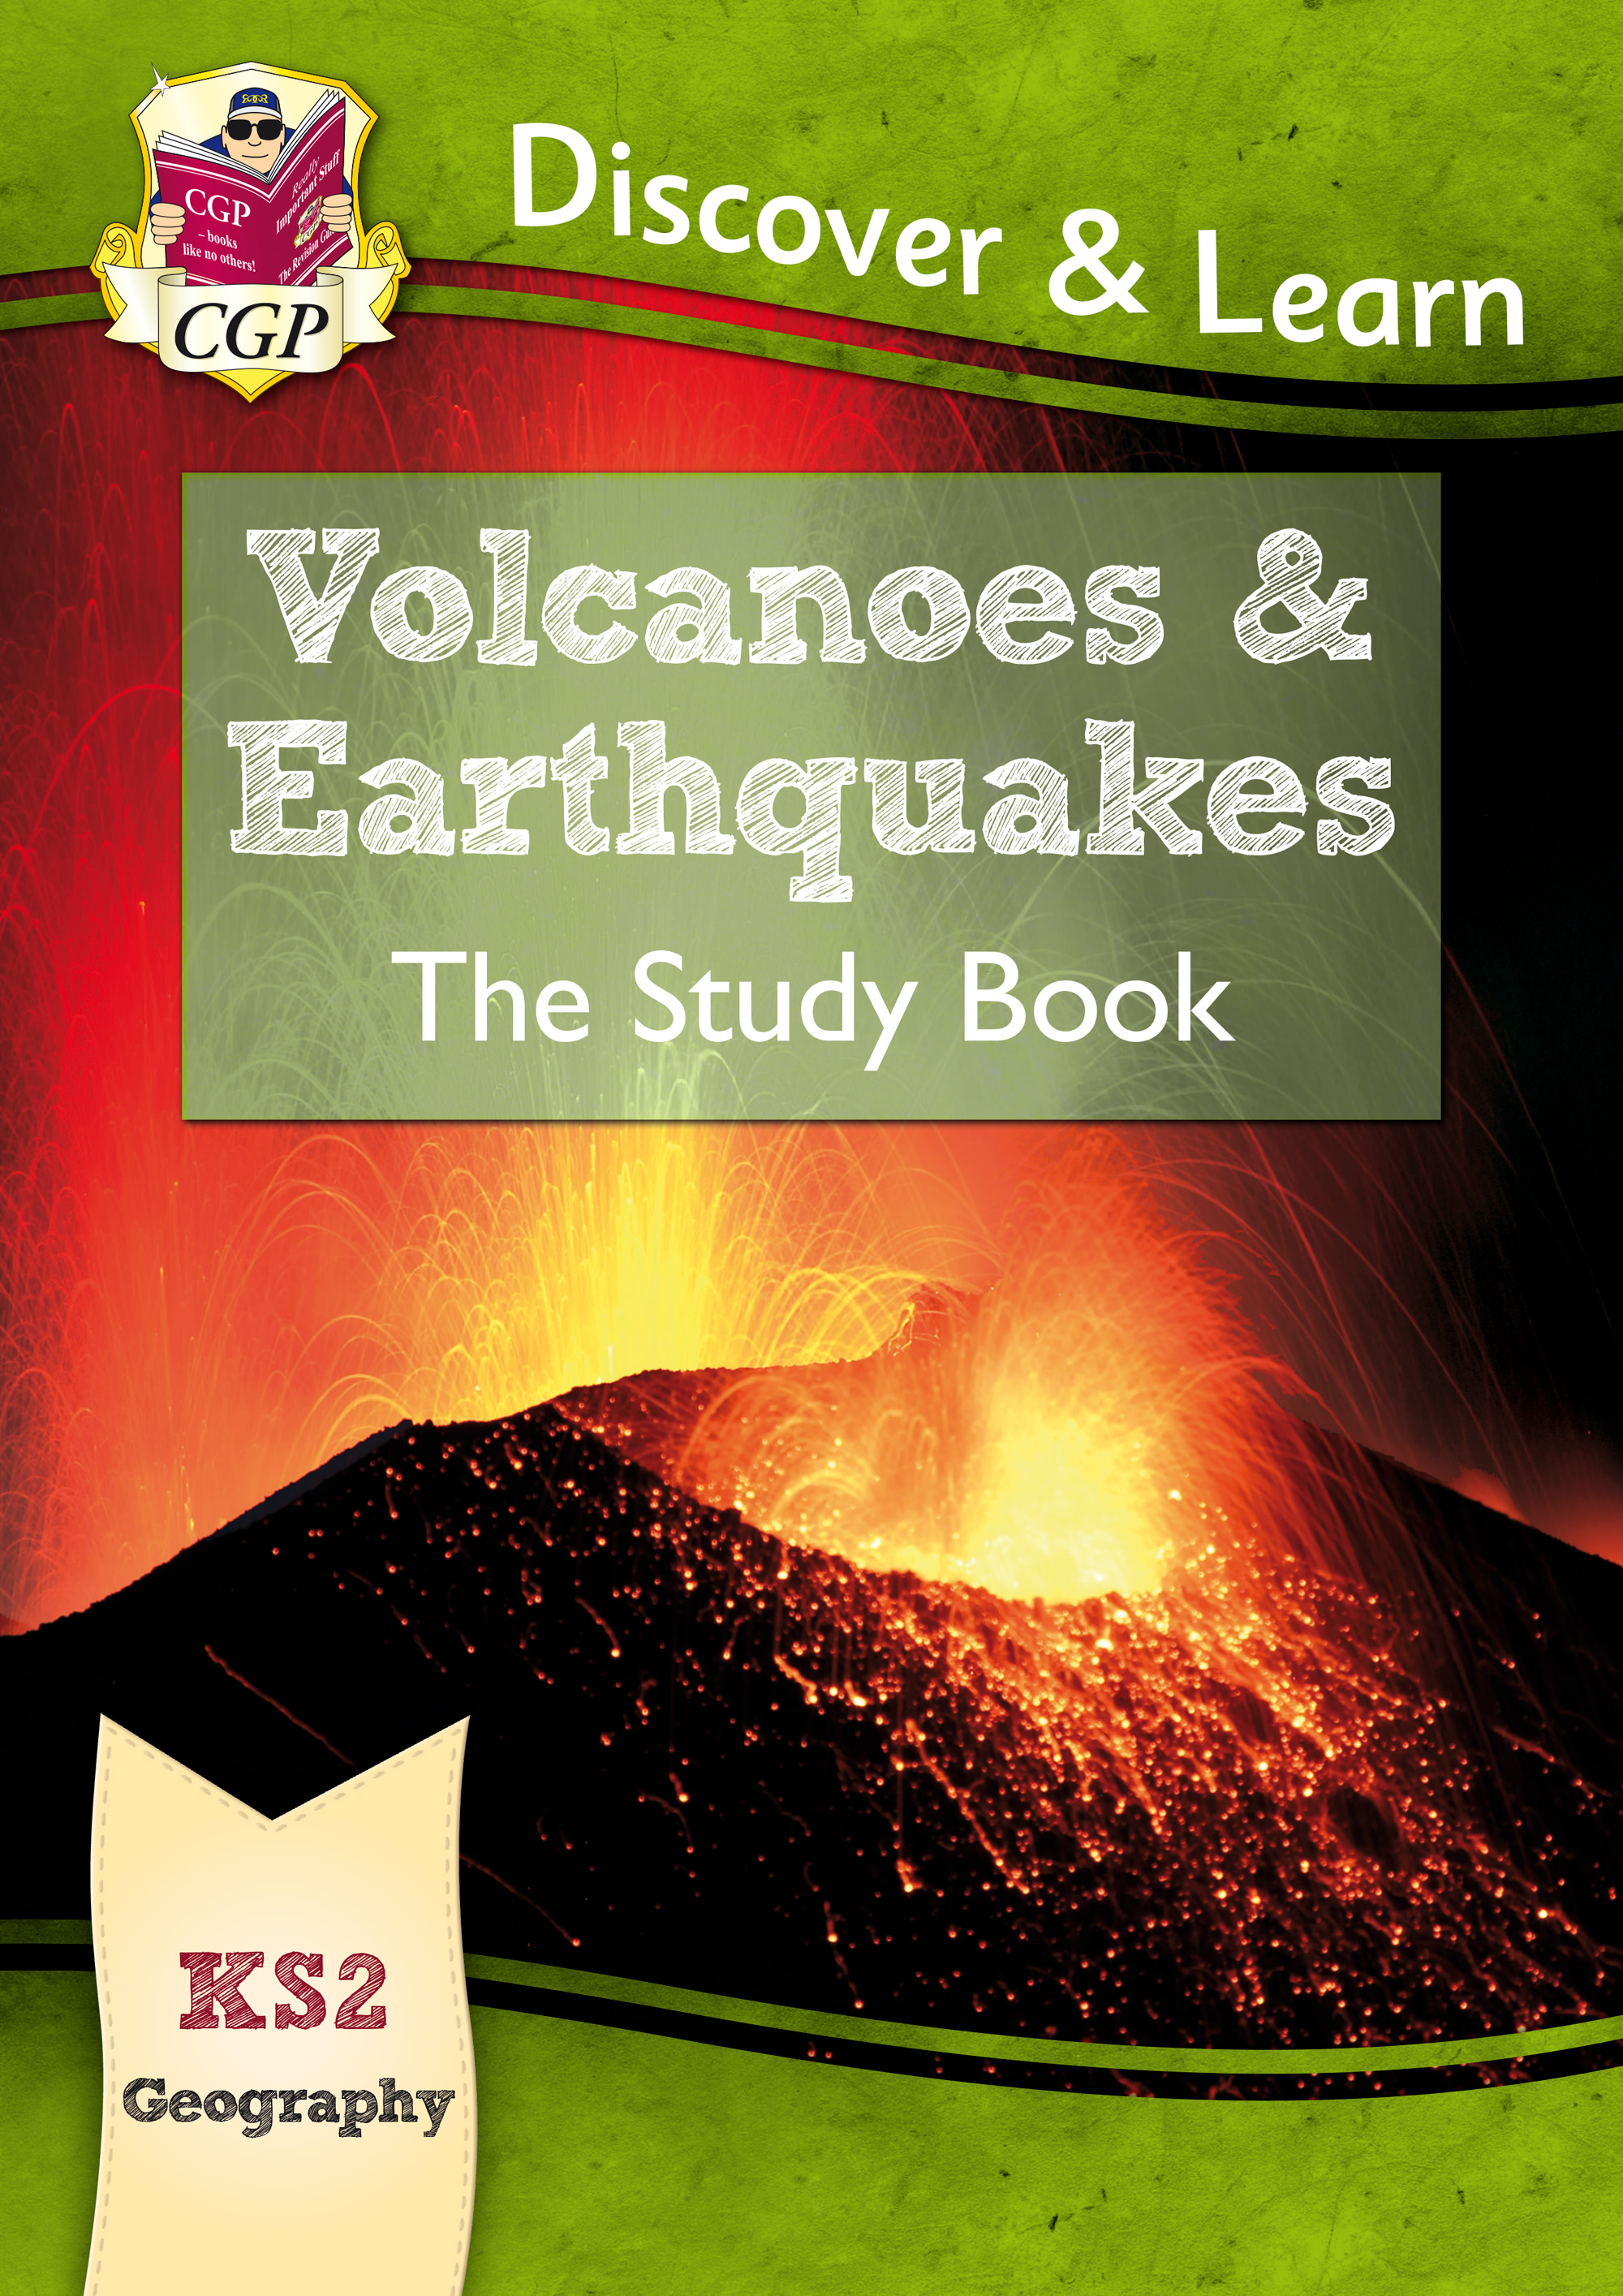 GVR21 - KS2 Discover & Learn: Geography - Volcanoes and Earthquakes Study Book